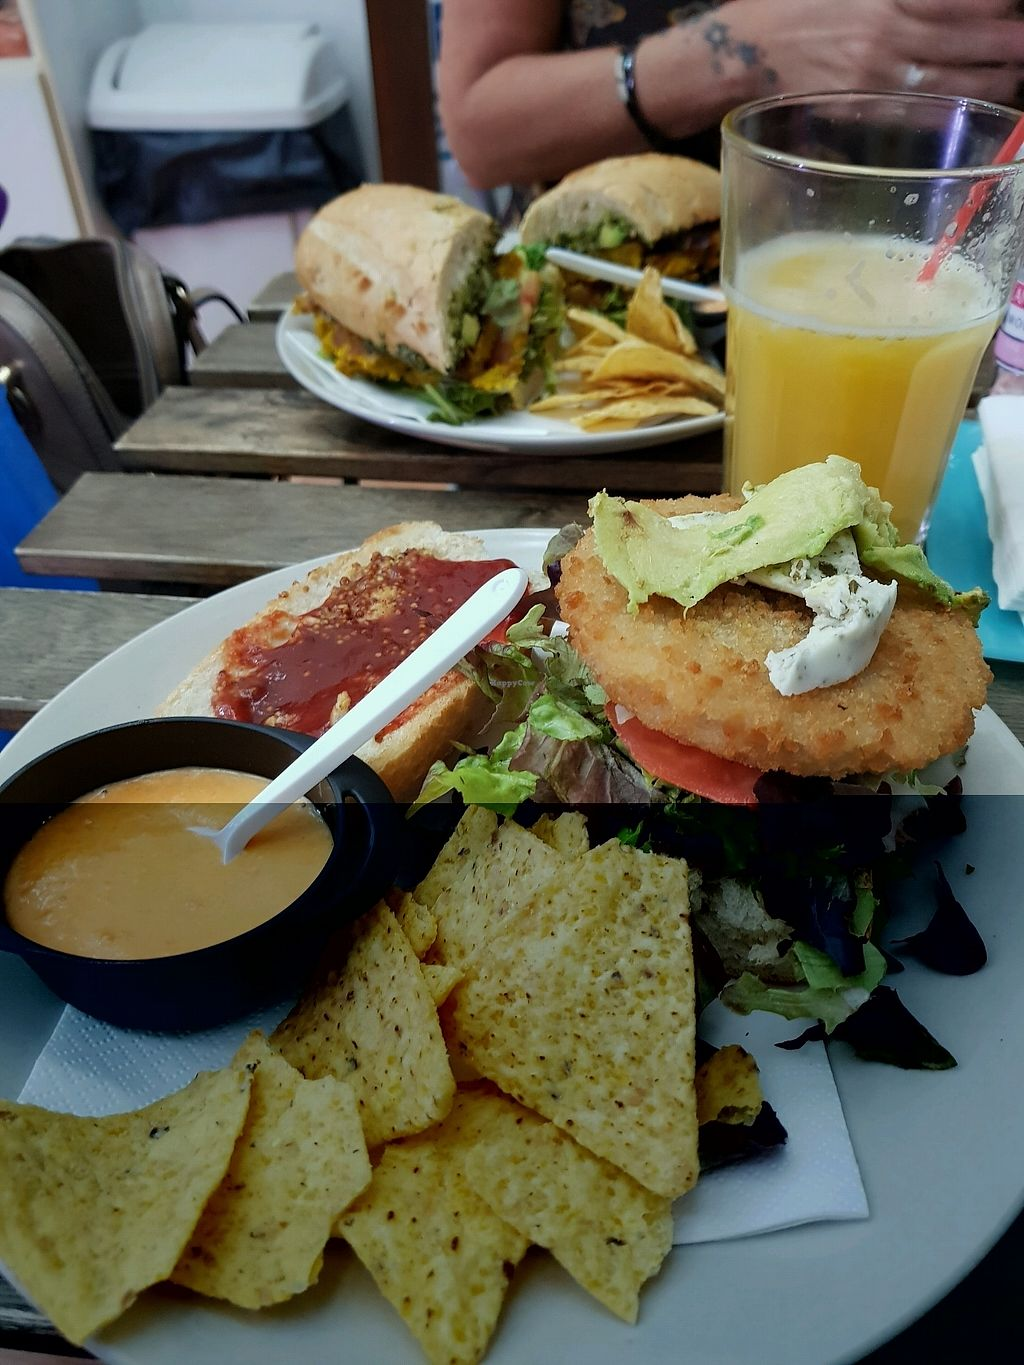 """Photo of El Veganito del Charco  by <a href=""""/members/profile/Disappeared"""">Disappeared</a> <br/>Chickn burger (front) and falafel (behind) <br/> November 17, 2017  - <a href='/contact/abuse/image/66328/326531'>Report</a>"""